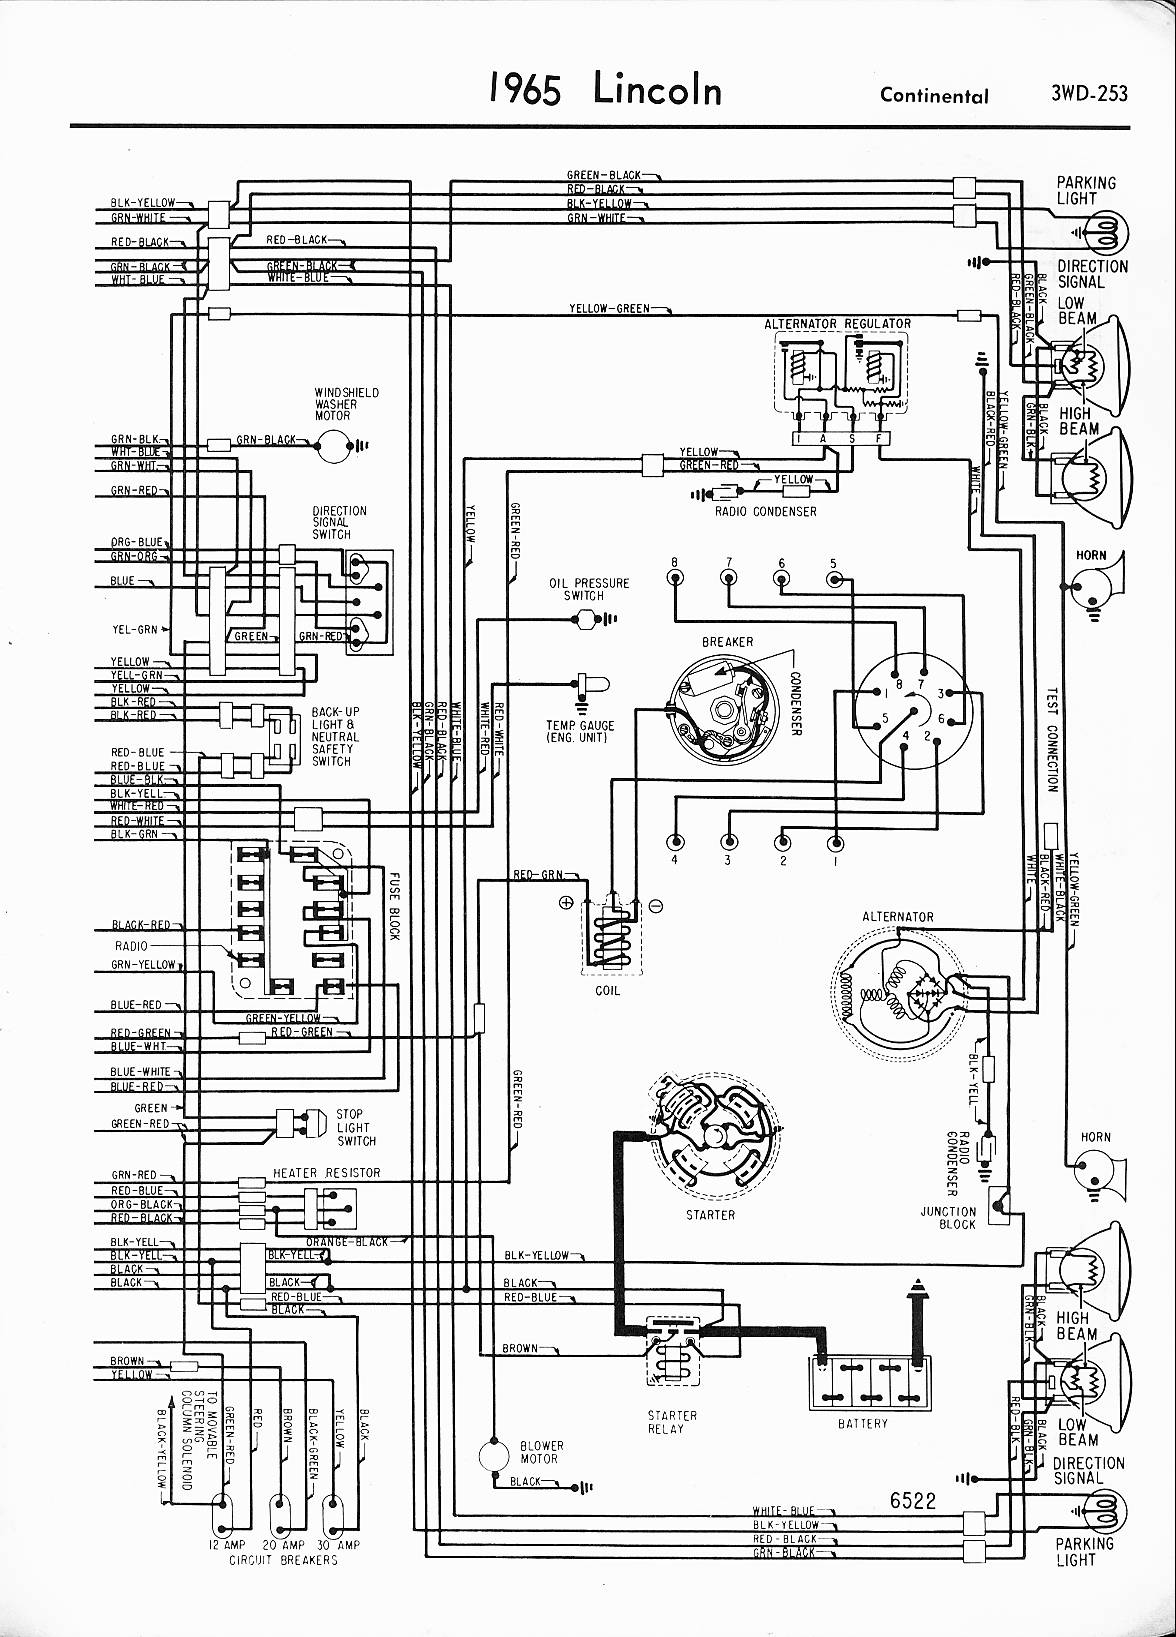 1995 Lexus Ls400 Radio Wiring Diagram besides Saturn Vue 2001 2004 Fuse Box Diagram as well P 0996b43f8037a01c furthermore T24822991 Toyota ist started second stopped turns likewise Bmw X3 Wiring Diagram. on 2001 town car fuse diagram